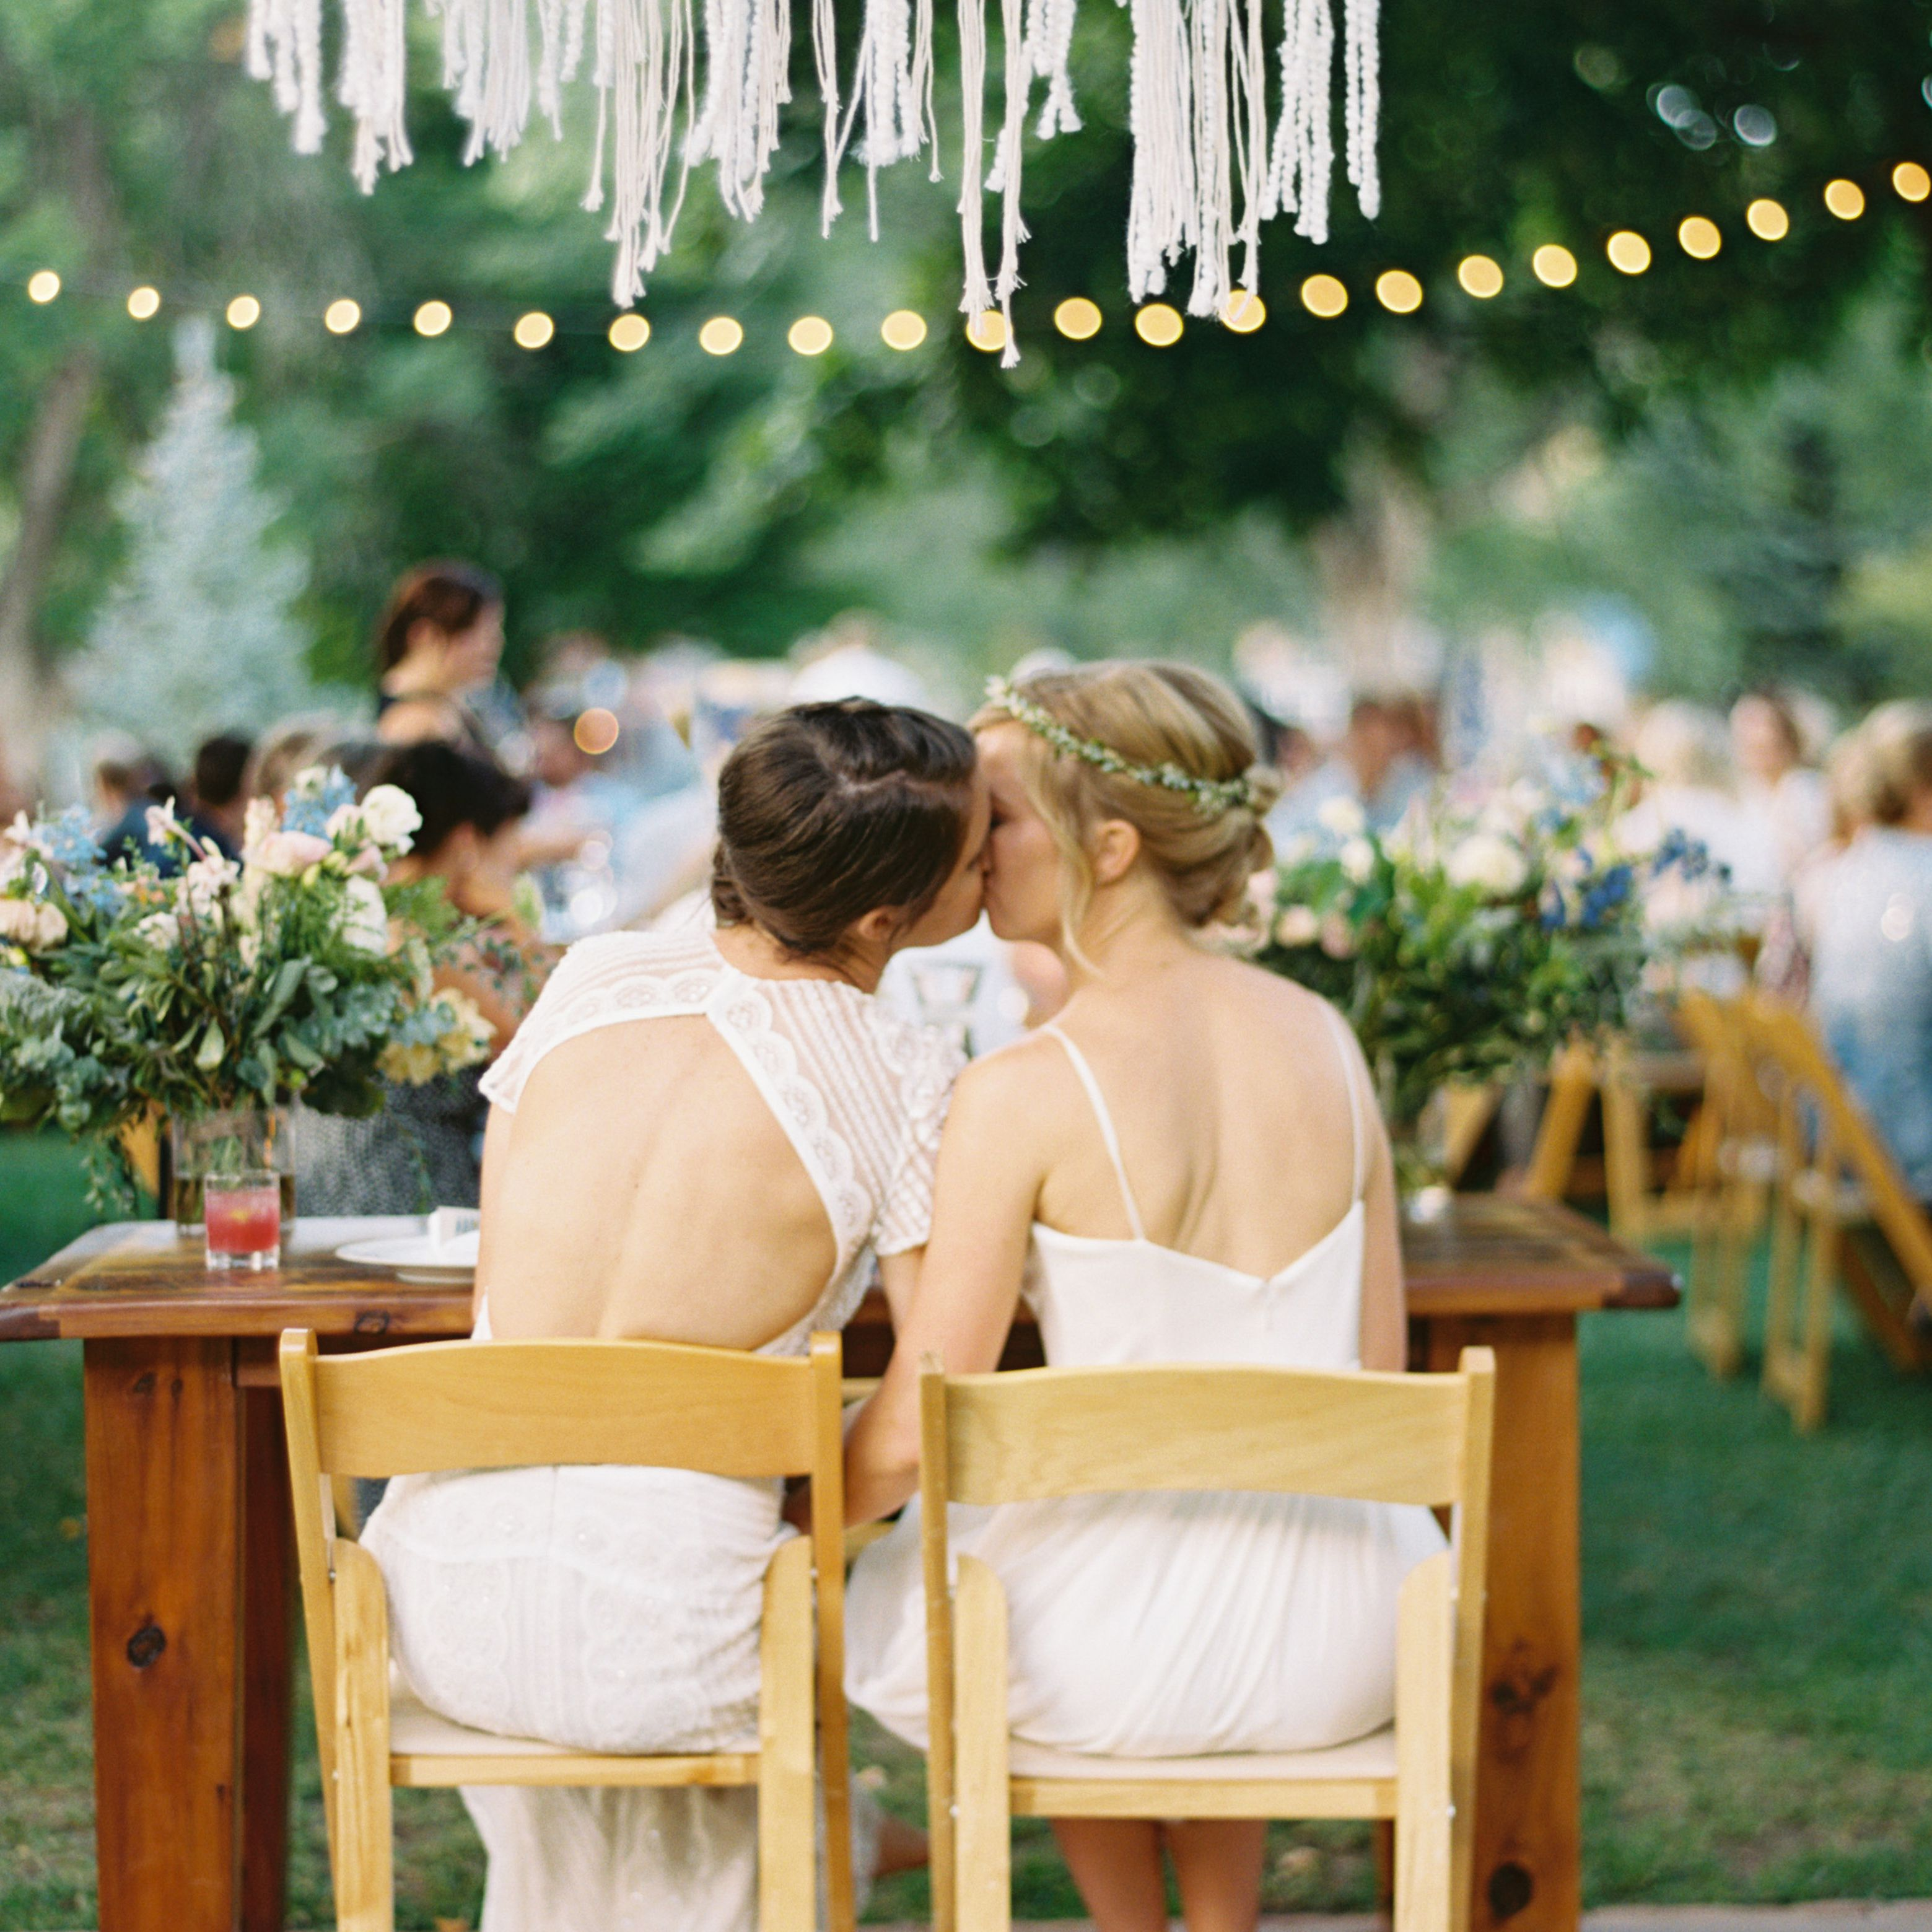 Wedding Photography Styles The Complete Guide